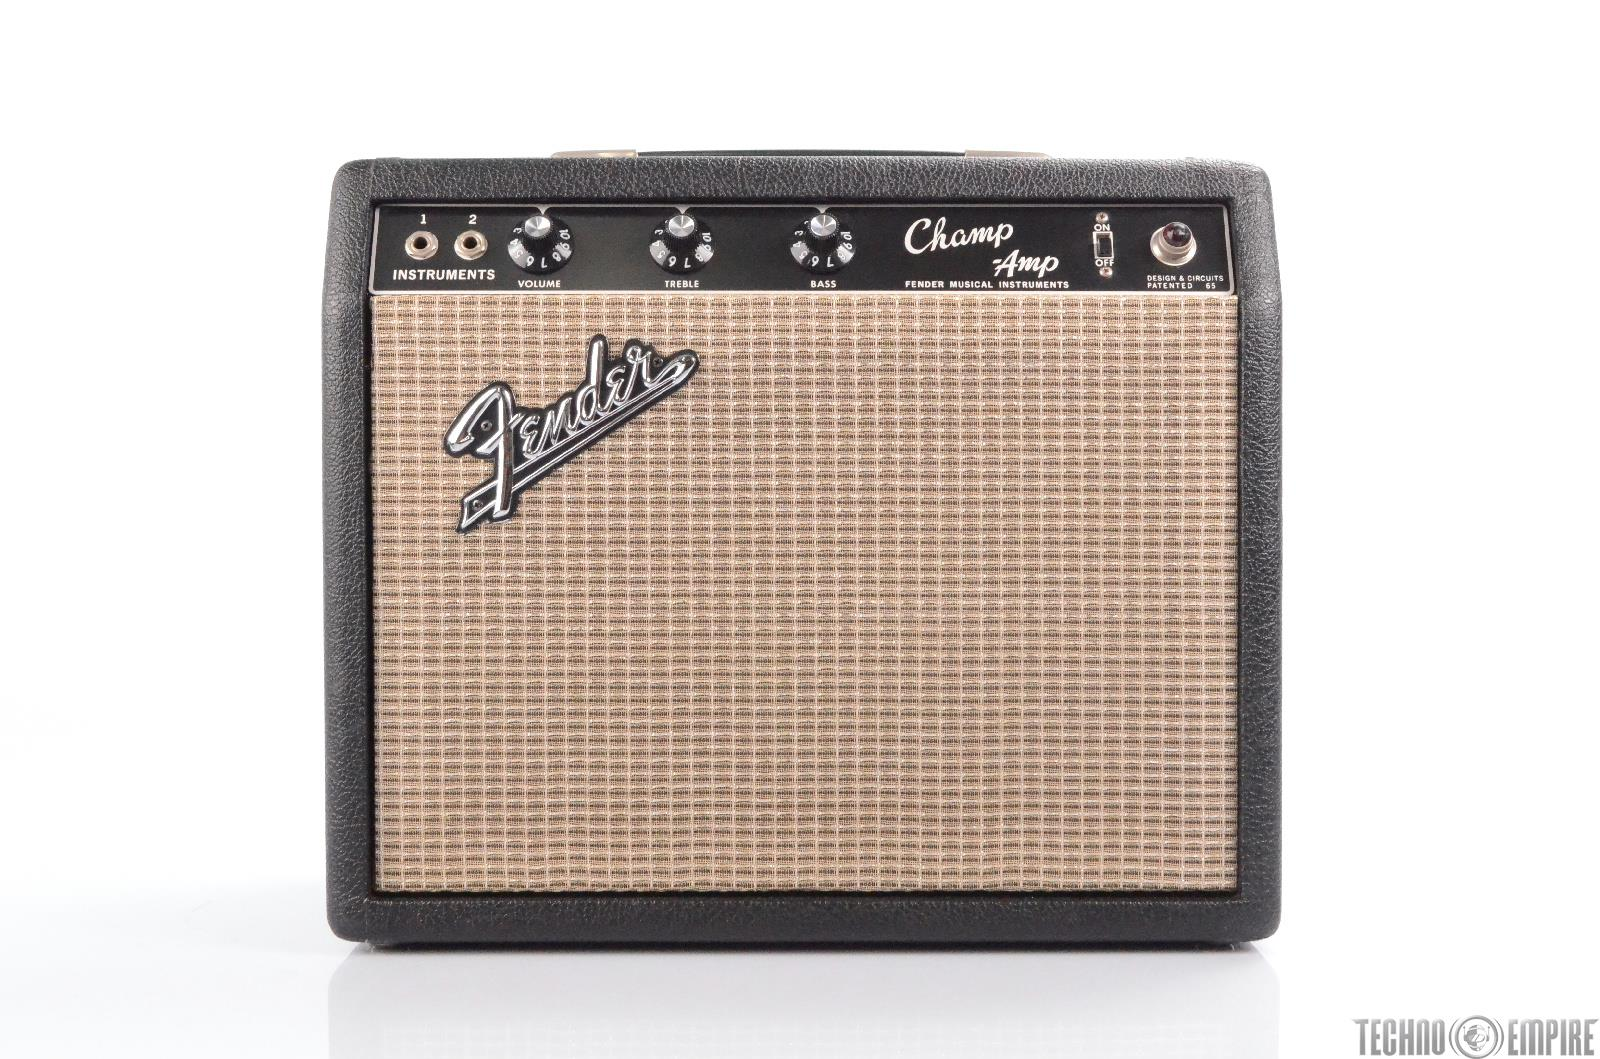 1966 Fender Champ Amp Blackface Vintage Combo Tube Amp Owned by Matt Hyde #30208